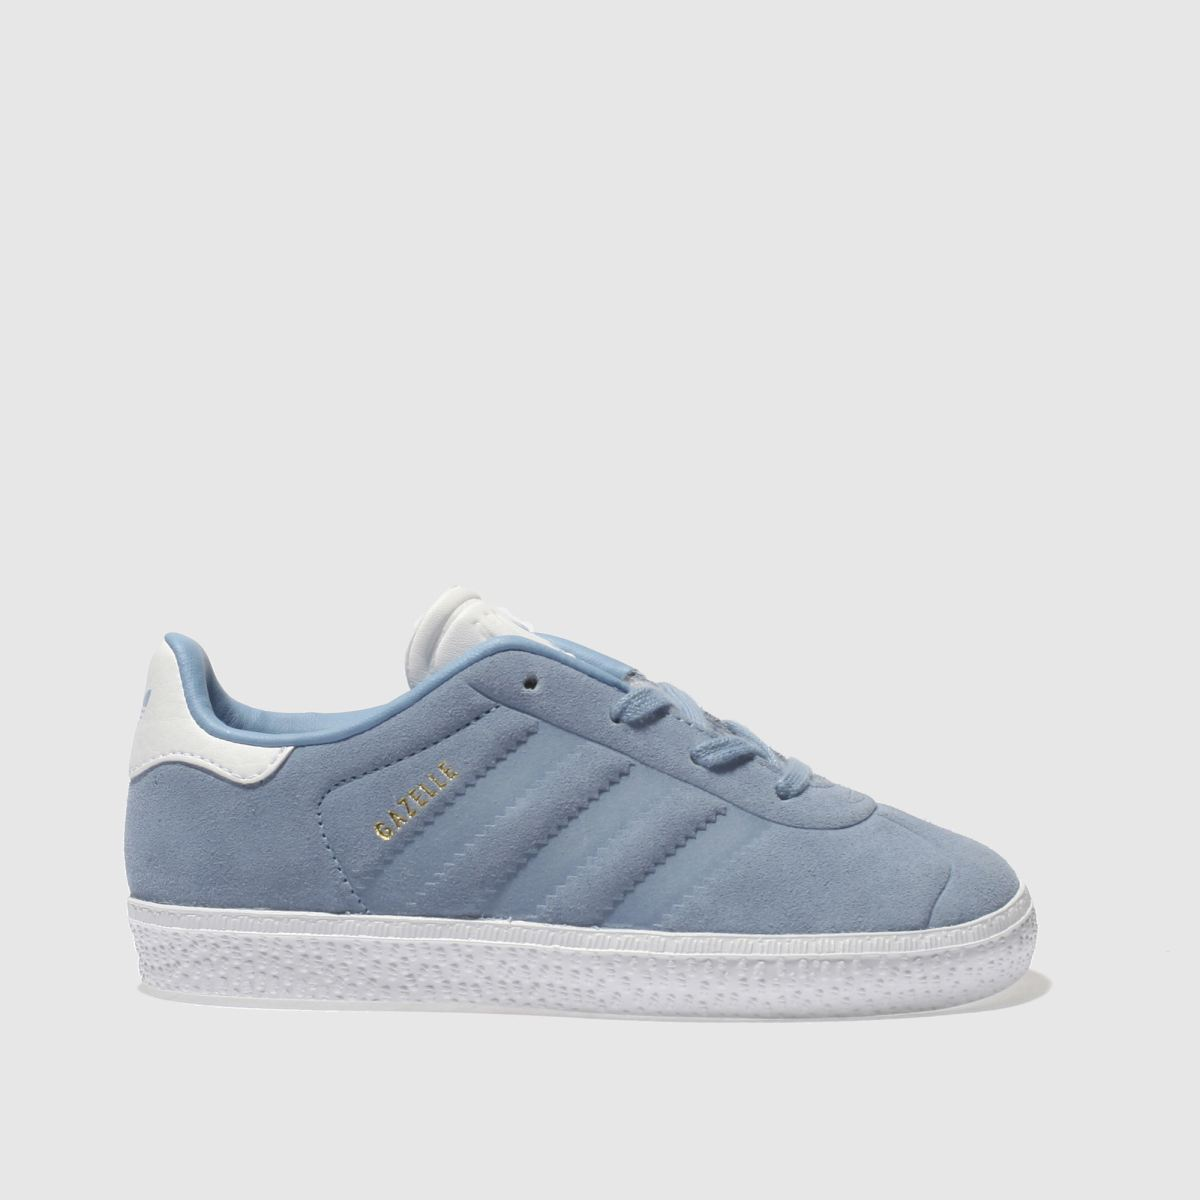 Adidas Pale Blue Gazelle Toddler Trainers